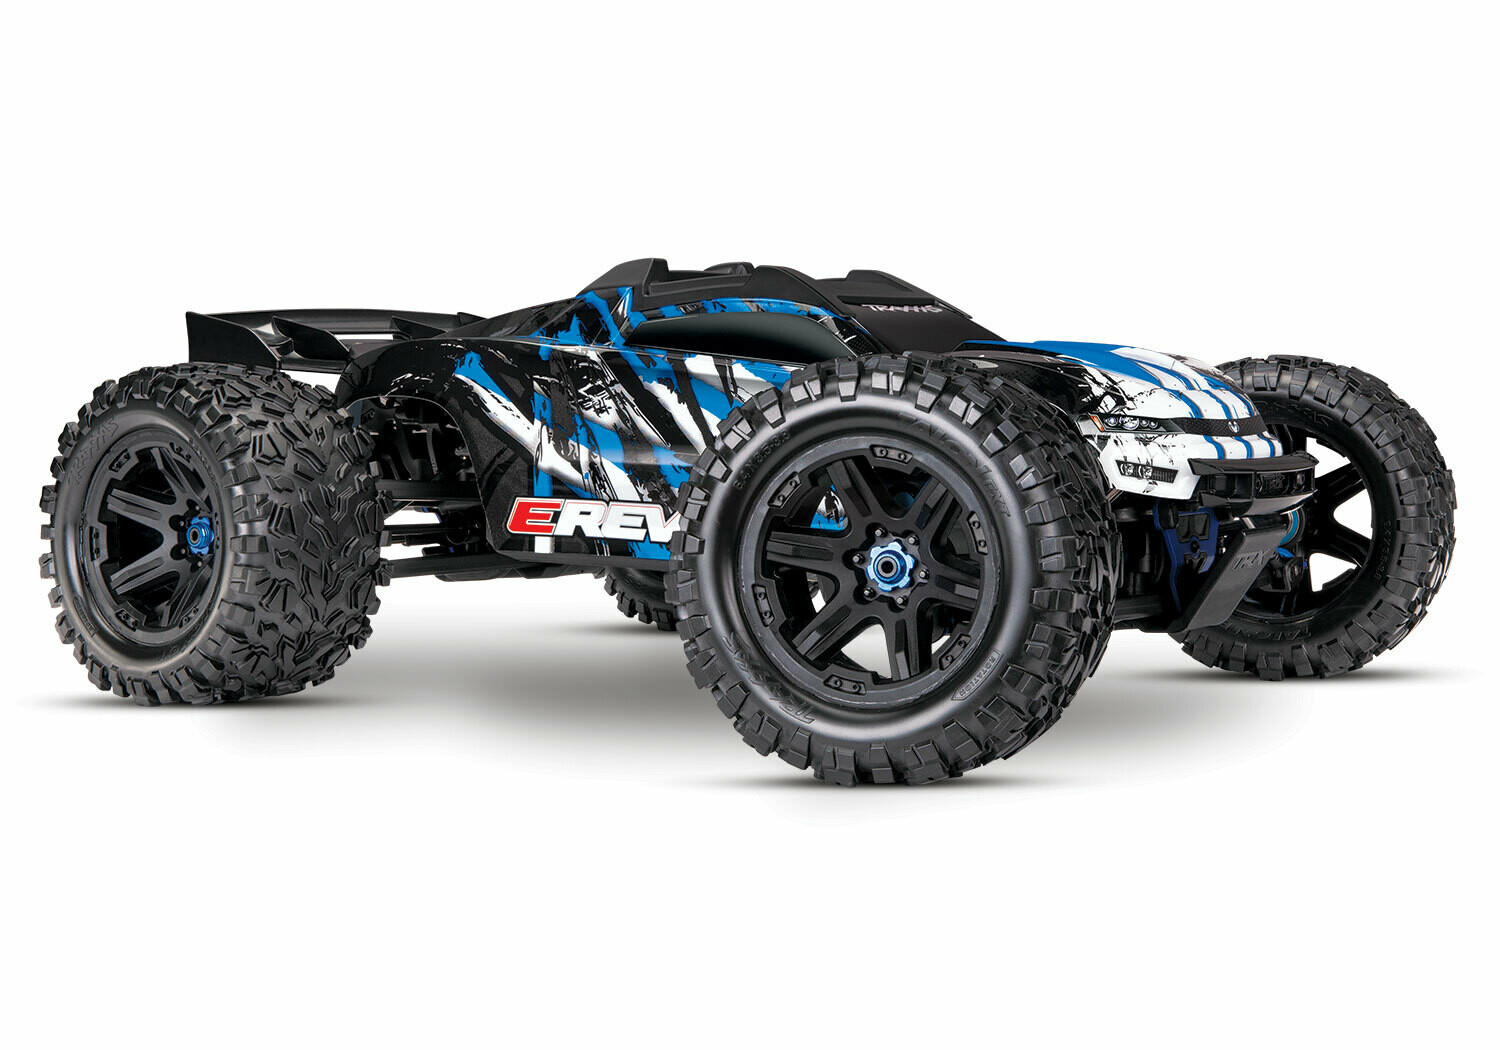 Traxxas E Revo 2.0 4WD Brushless Electric Racing Monster Truck (VXL-6S/TQi/Wireless Module/Motor Temp Sensor/2x3S 5000mAh/Dual Live iD Charger/Phone Mount)